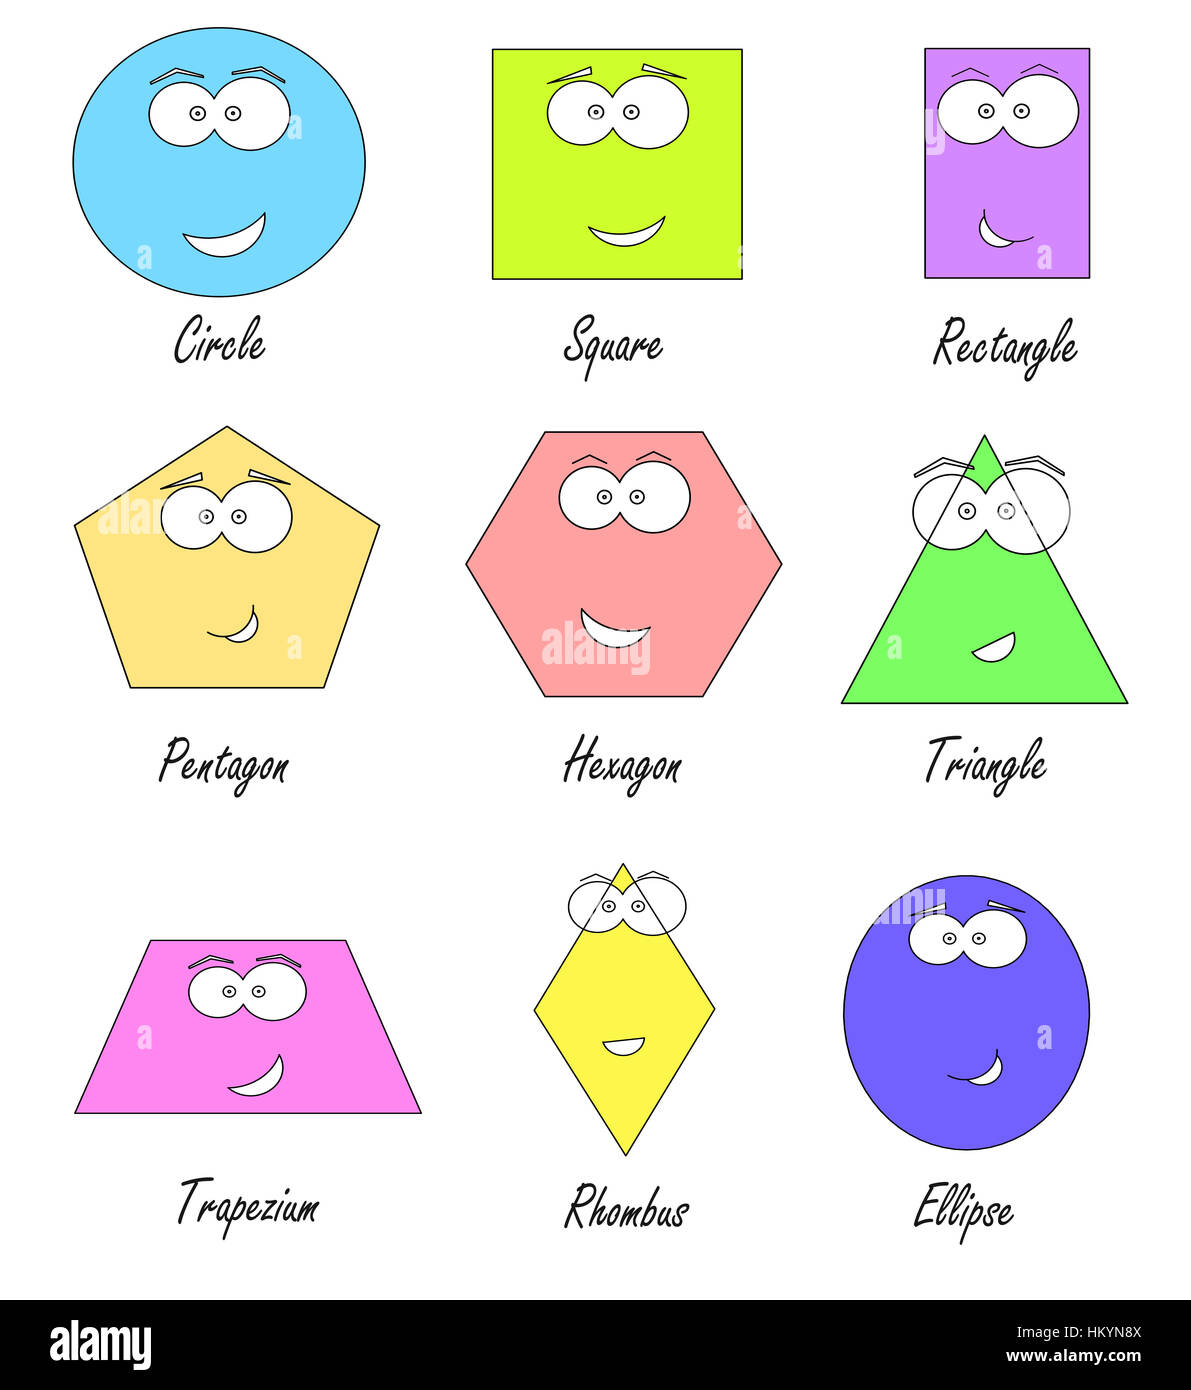 All White Rooms Geometric Shapes With Funny Faces School Education For